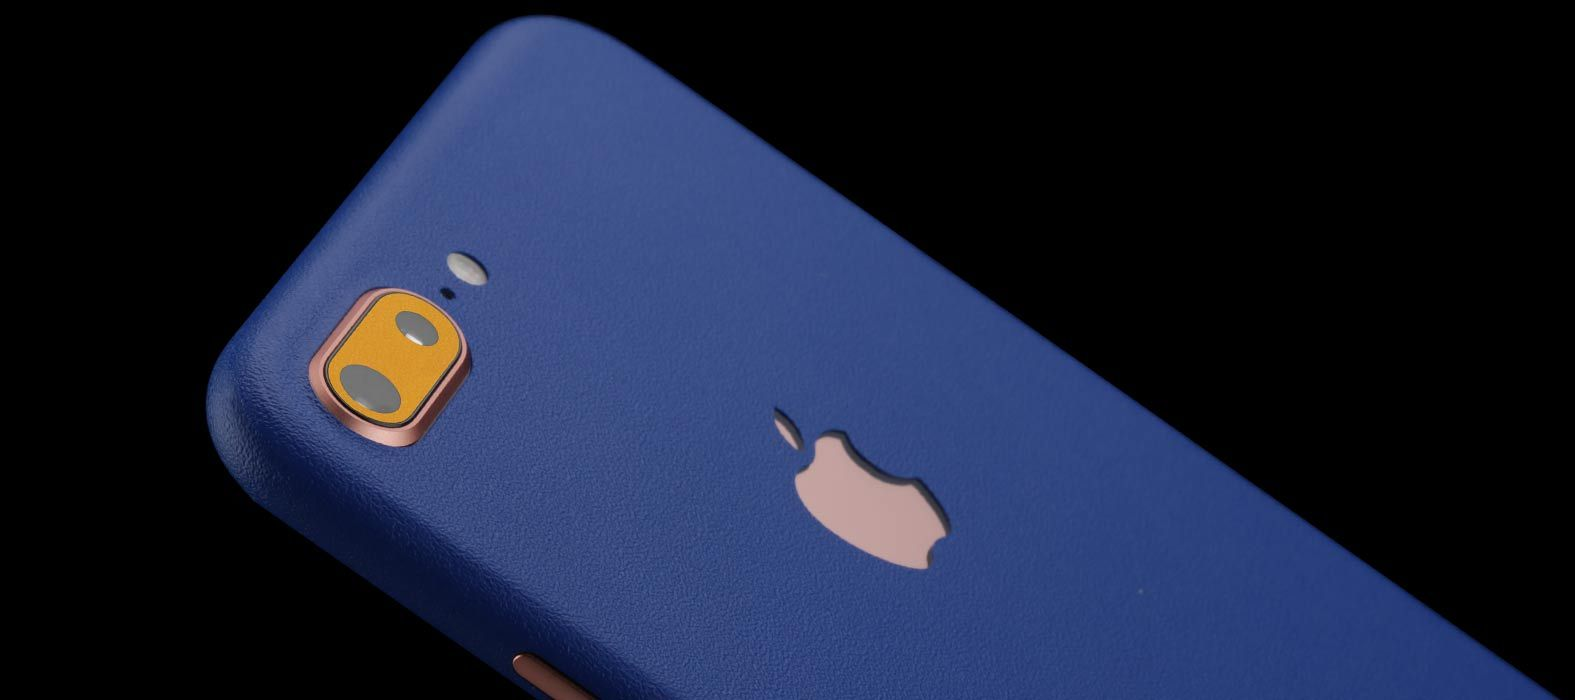 iPhone 8 Plus Sandstone Blue Skins